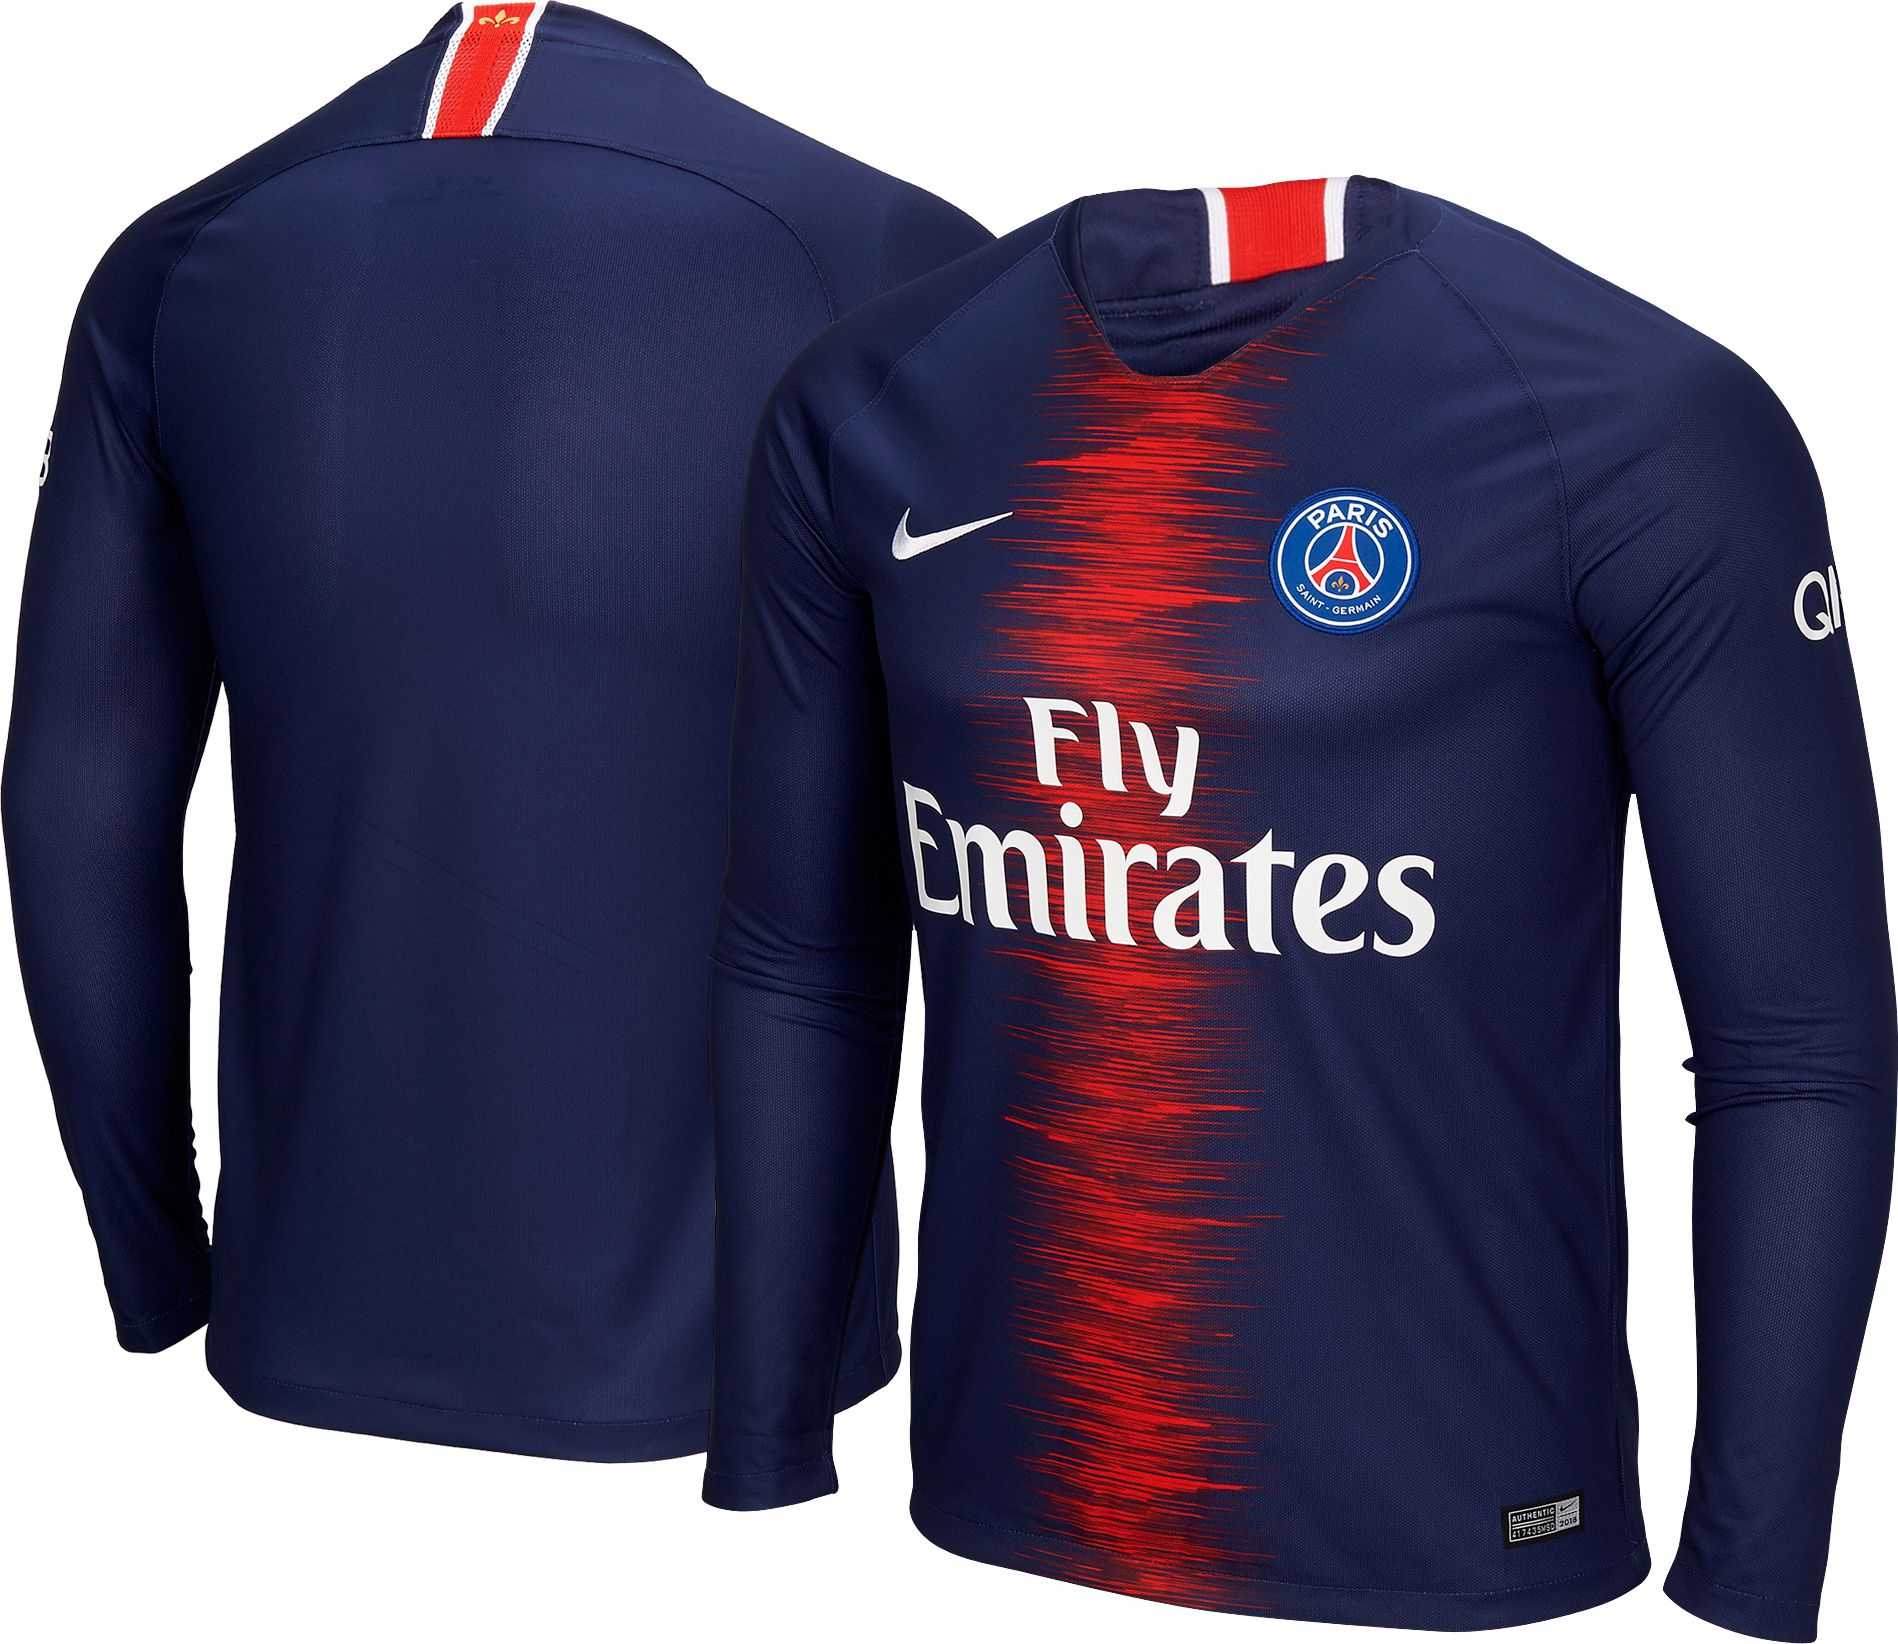 013e303b Nike Men's Paris Saint-Germain 2018 Breathe Stadium Home Replica ...